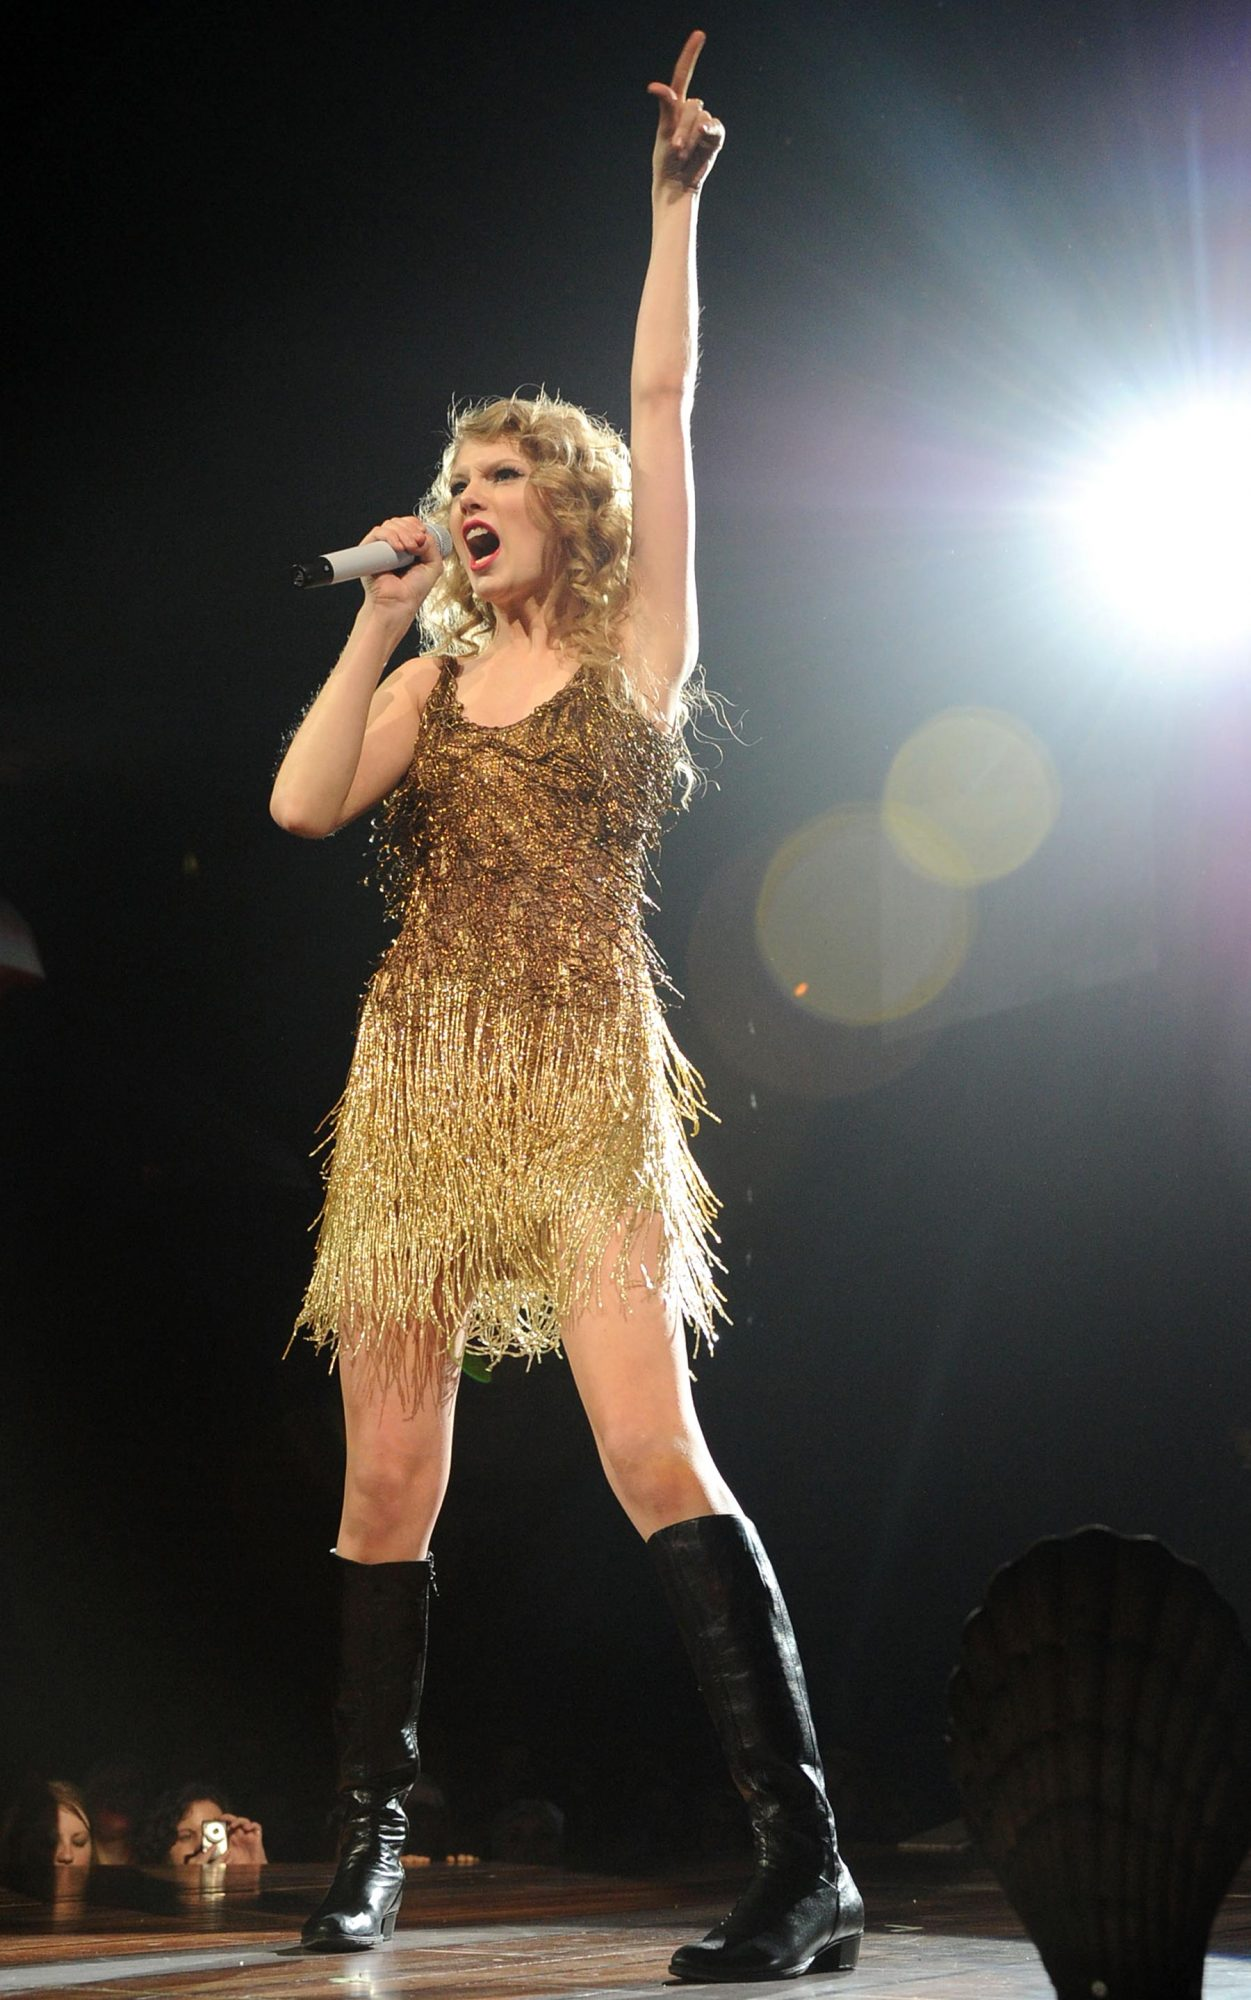 Taylor Swift Opens Final Dress Rehearsal For Speak Now Tour As A Benefit For Tornado Victims - Show